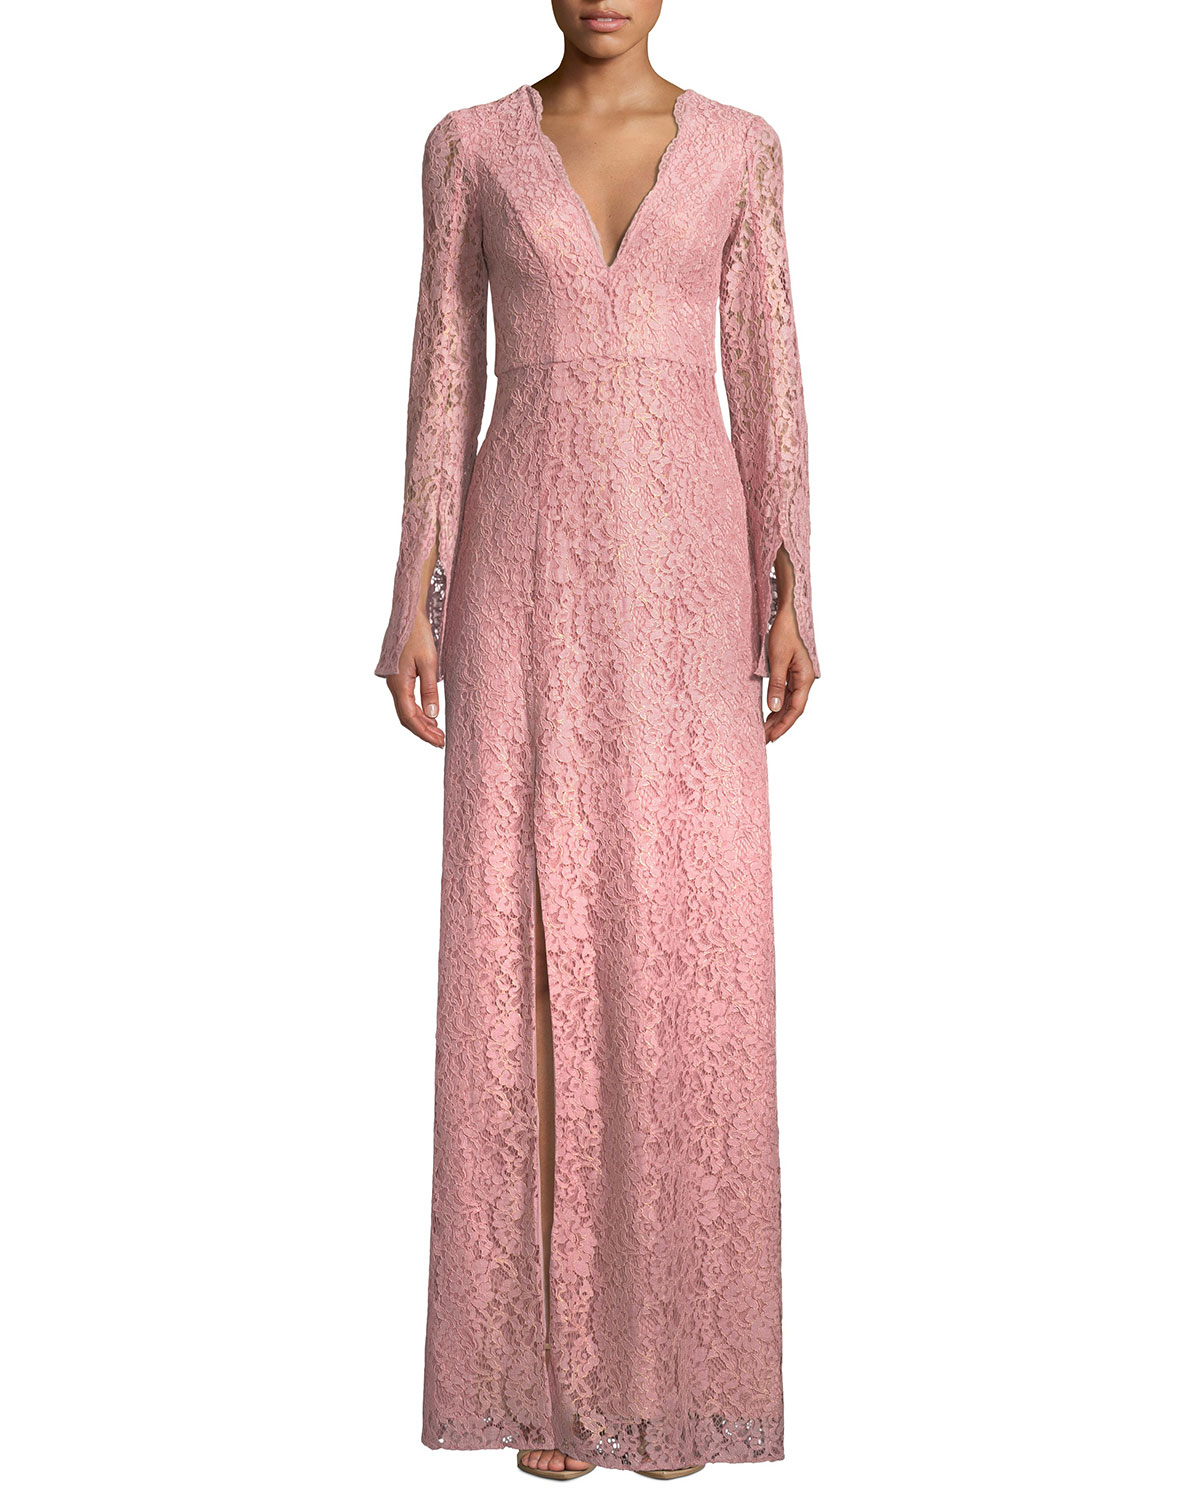 Viv Slit-Sleeve Lace Gown